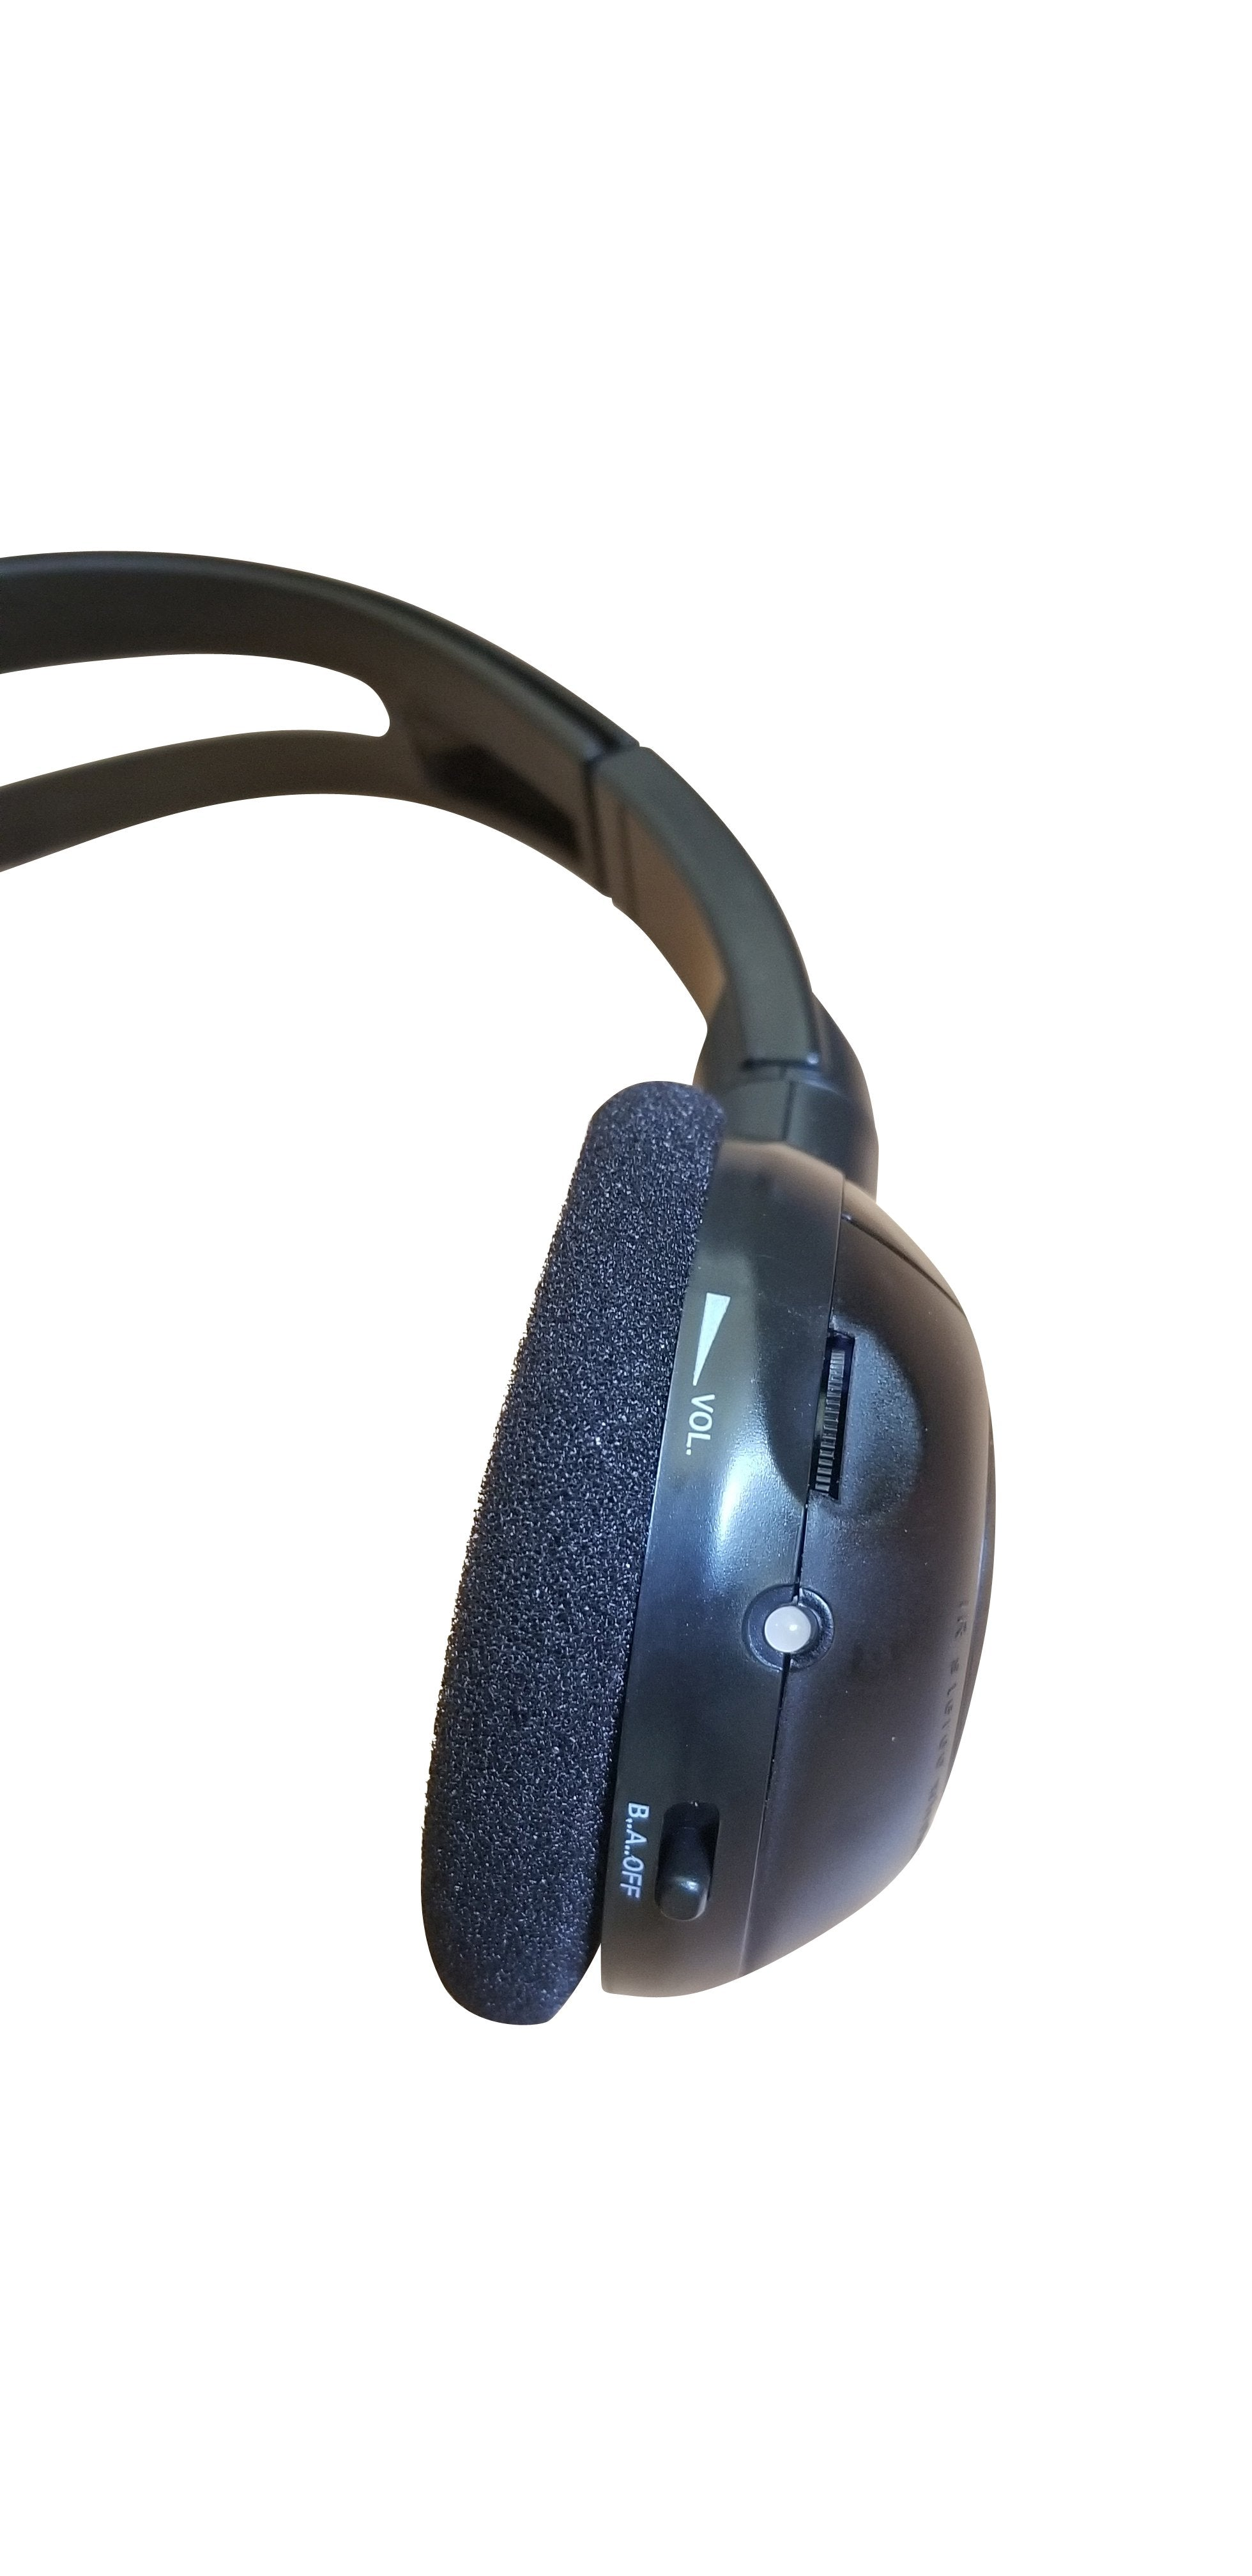 2014 VW-Volkswagen Tiguan Wireless DVD Headphone